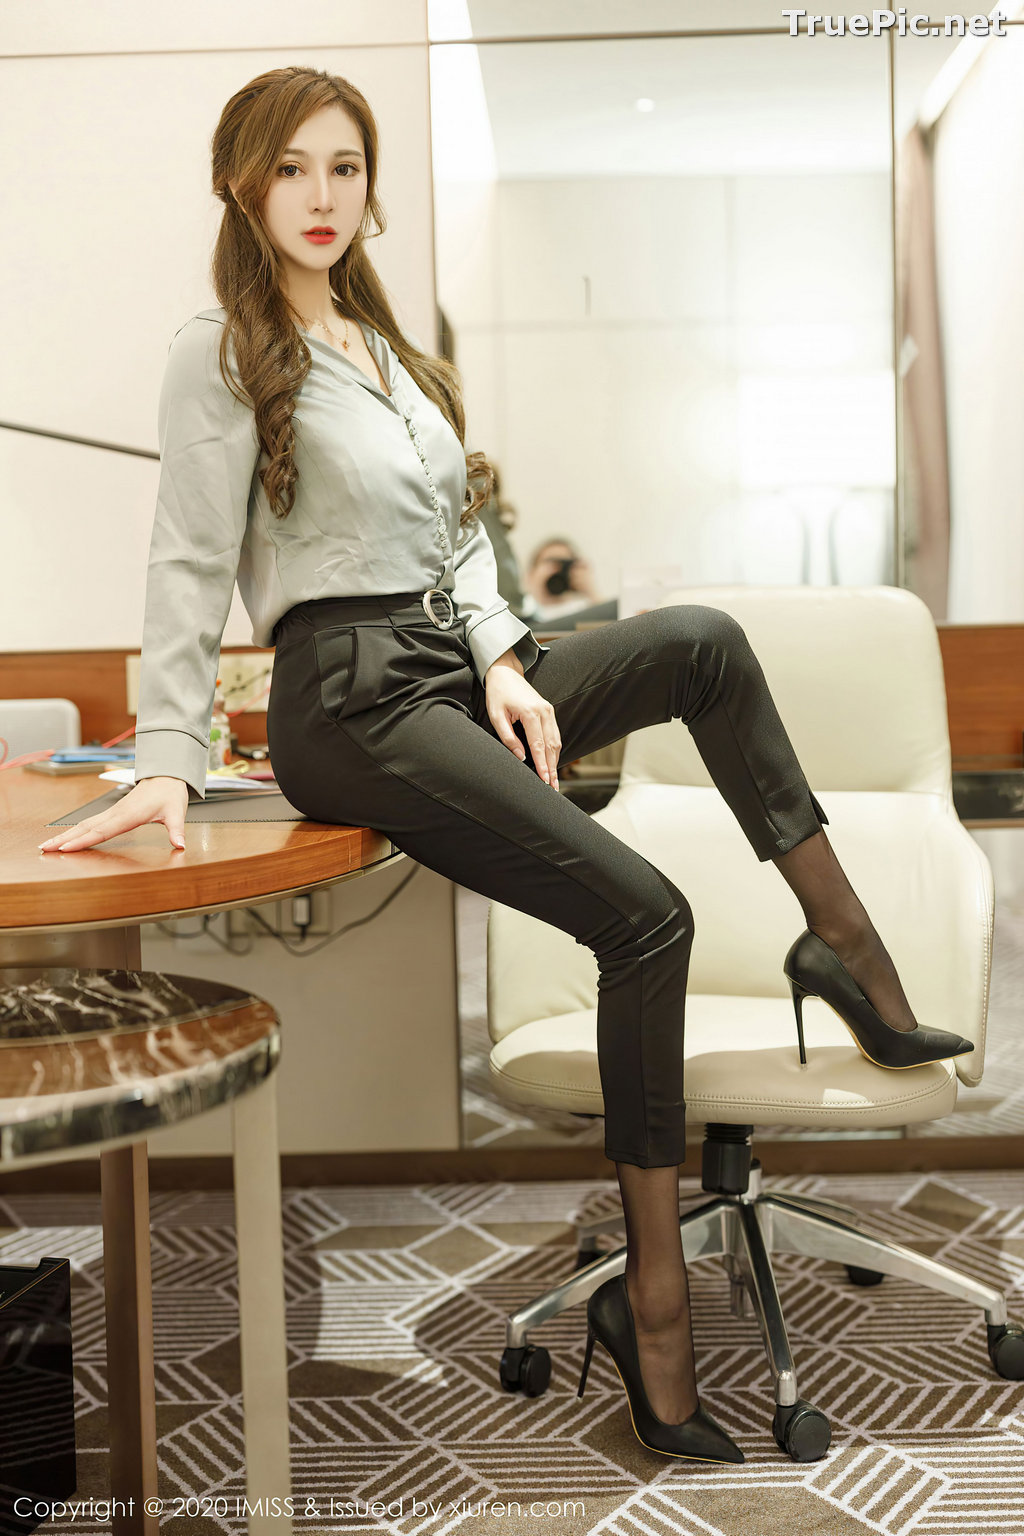 Image IMISS Vol.492 - Chinese Model - Lavinia肉肉 - Long Legs Office Girl - TruePic.net - Picture-8